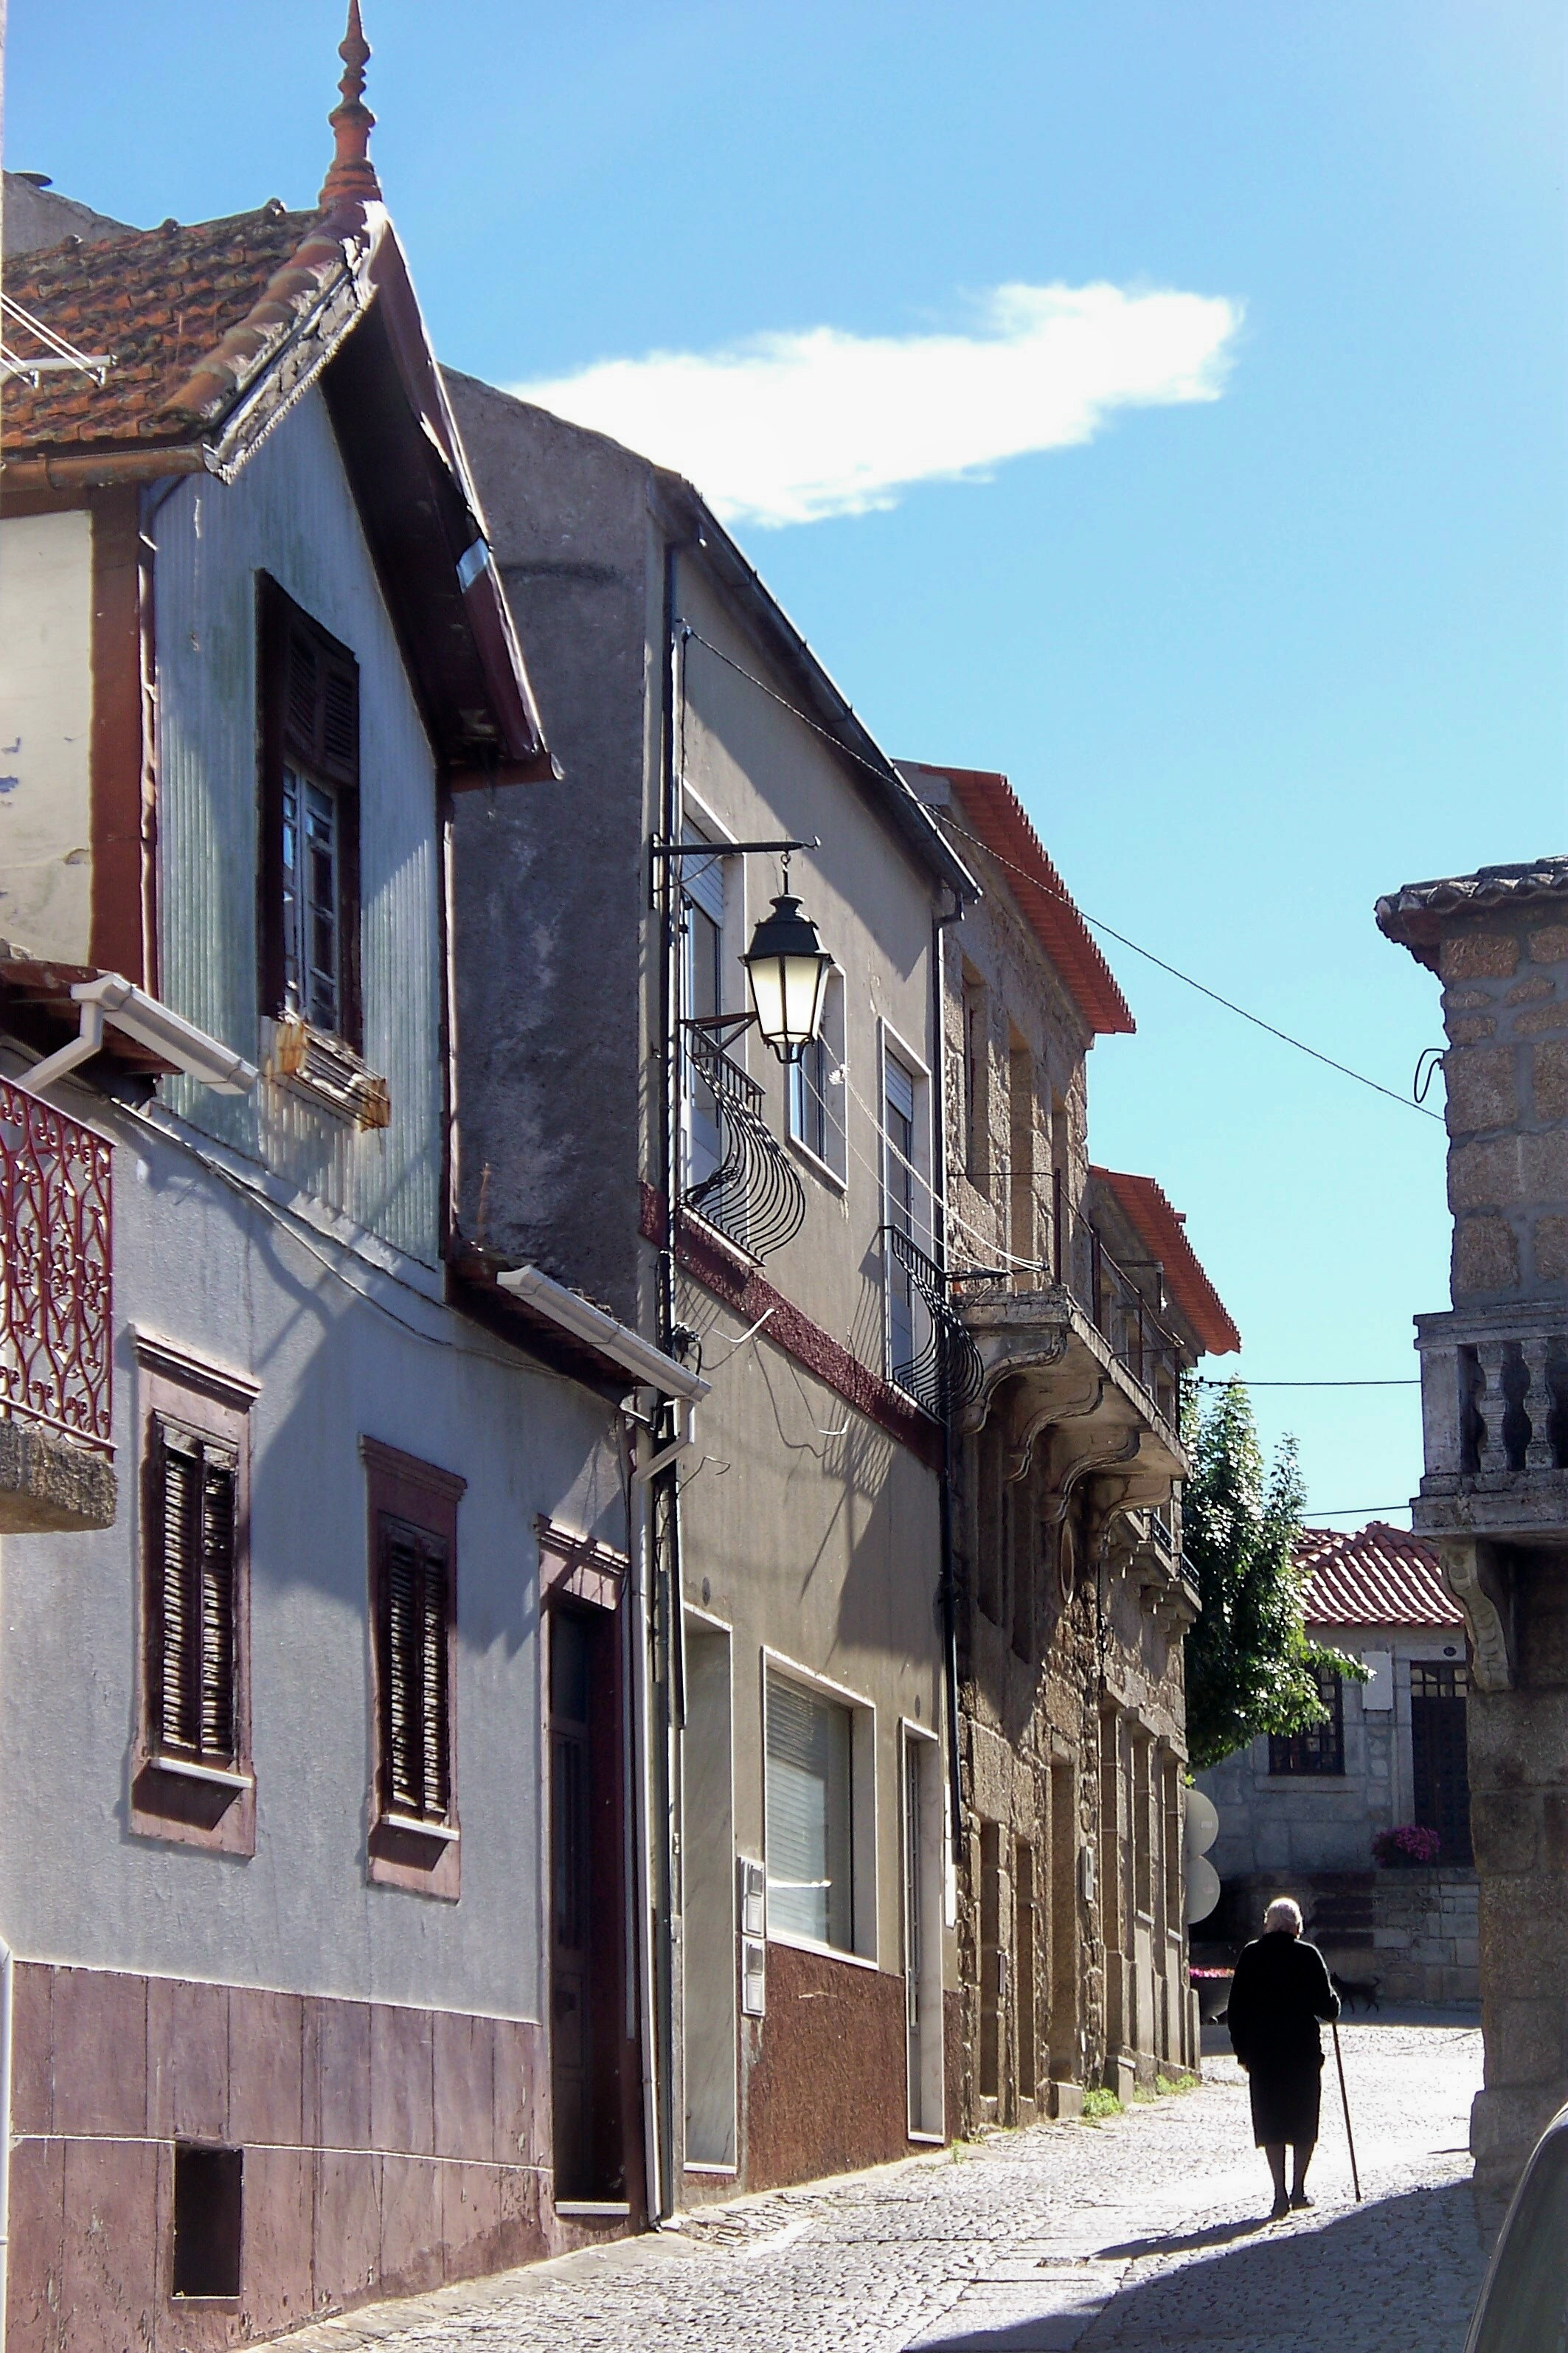 The community in Belmonte stayed hidden until the late 20th century.